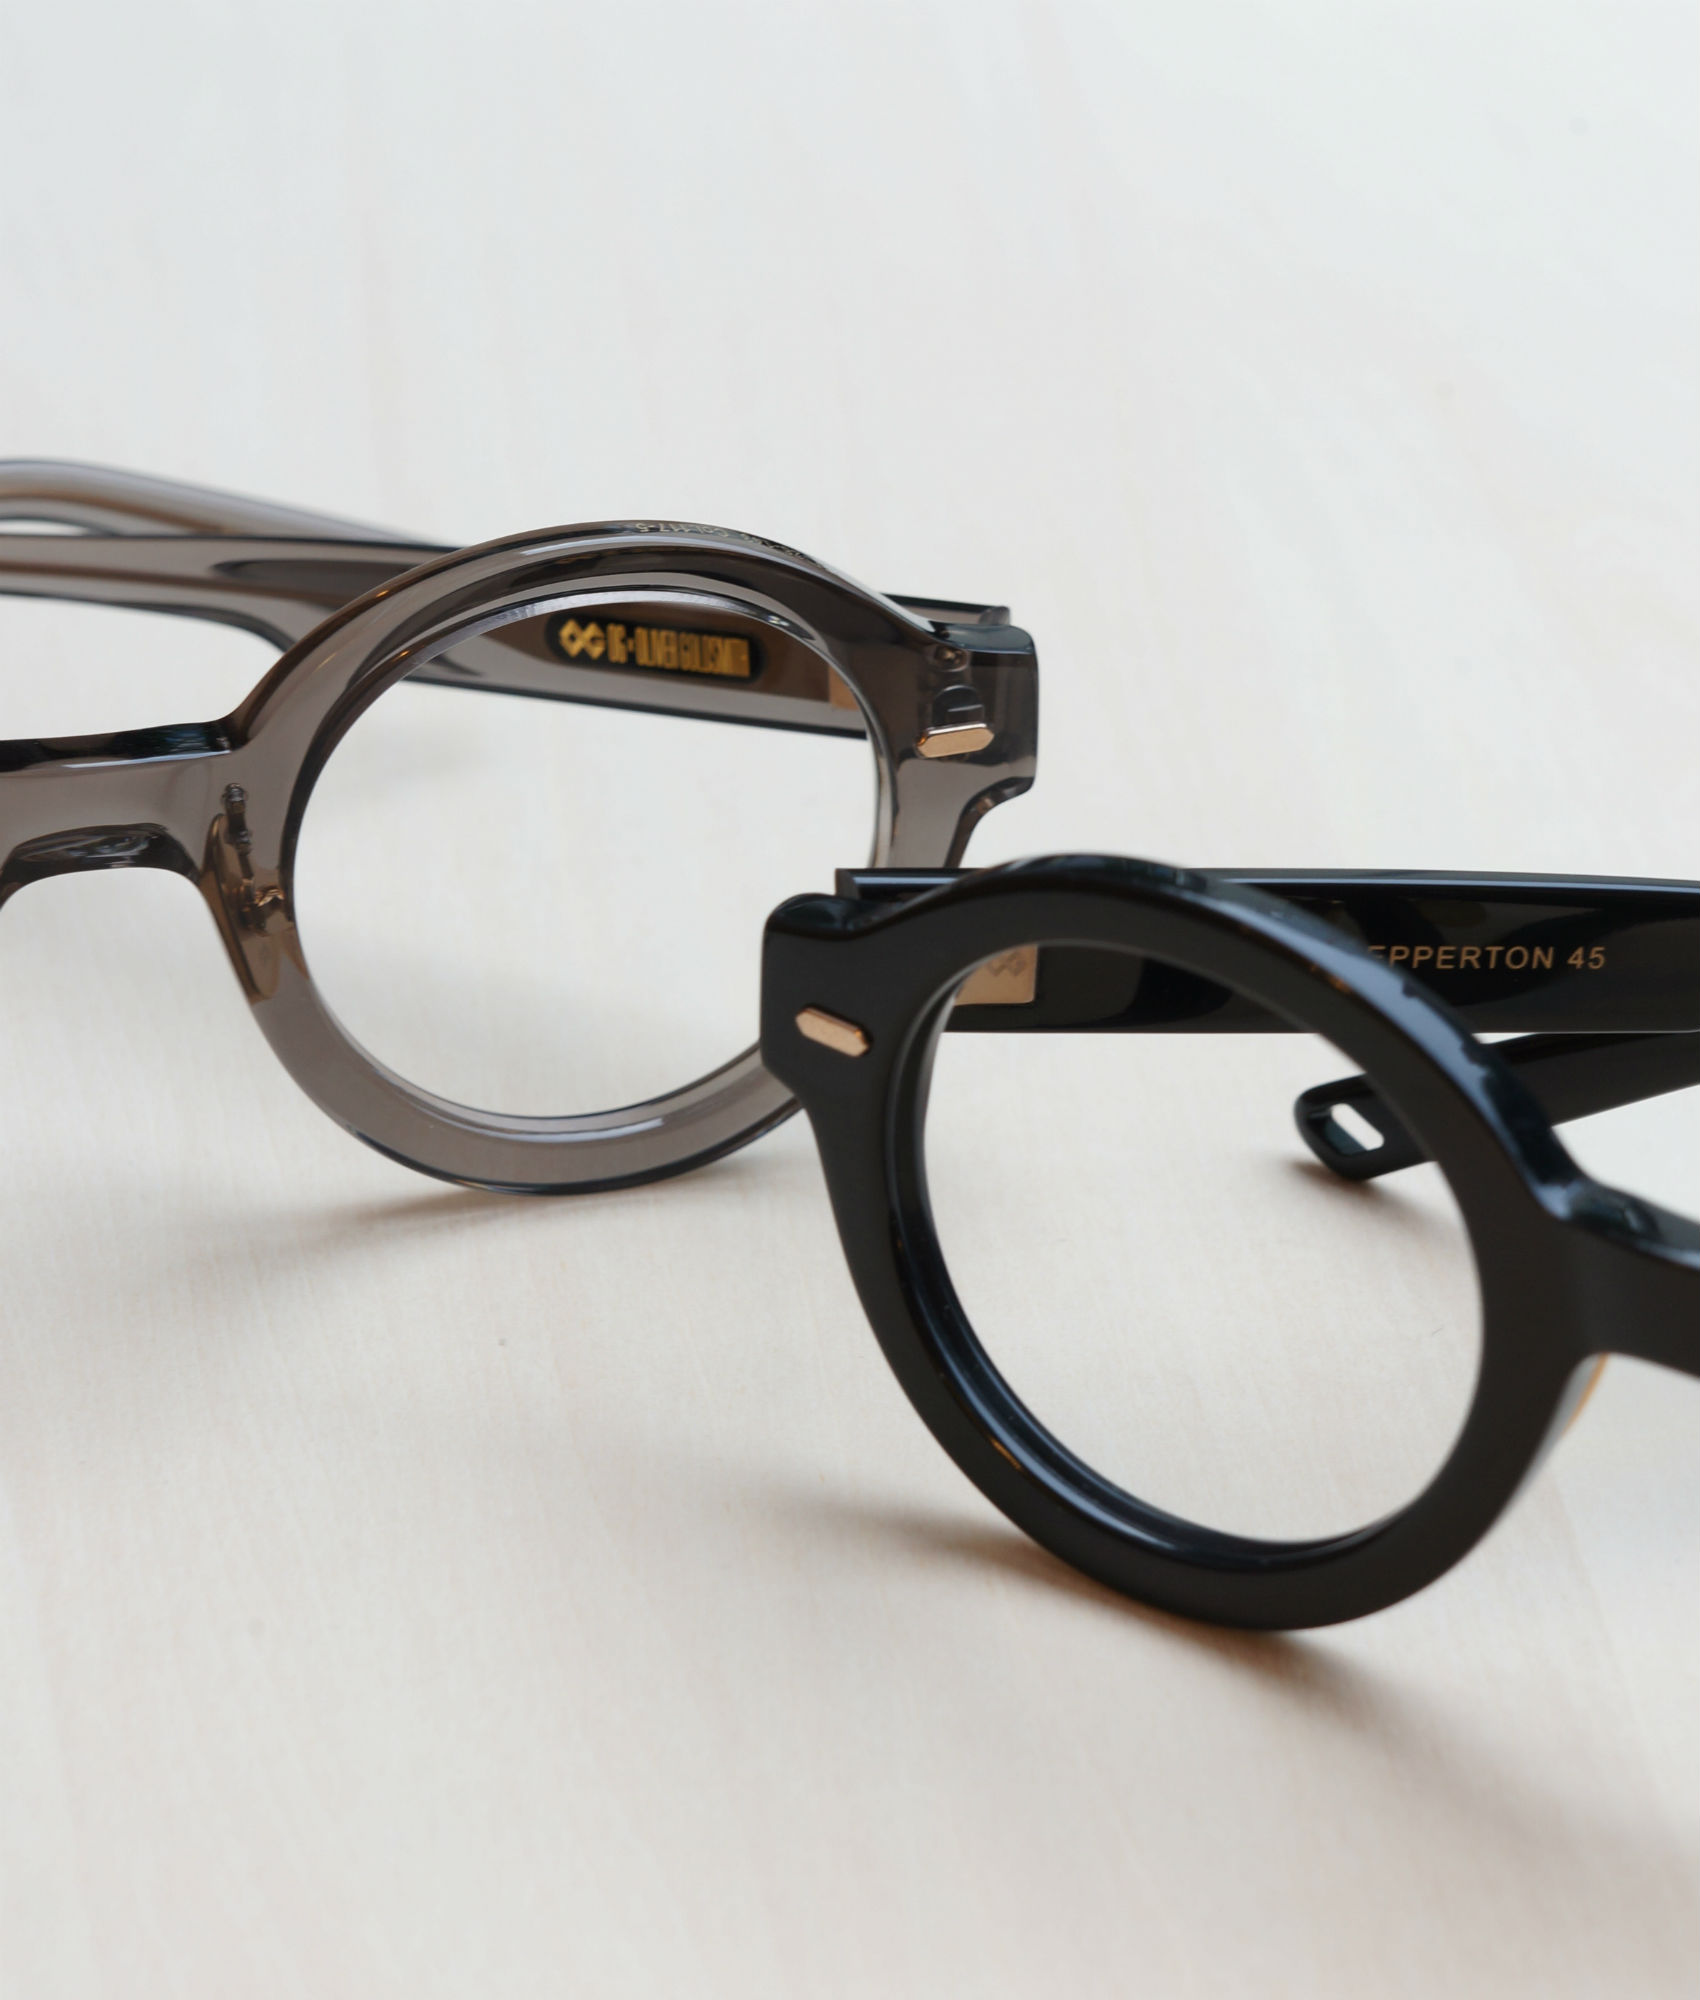 OG×OLIVER GOLDSMITH SHEPPERTON 45